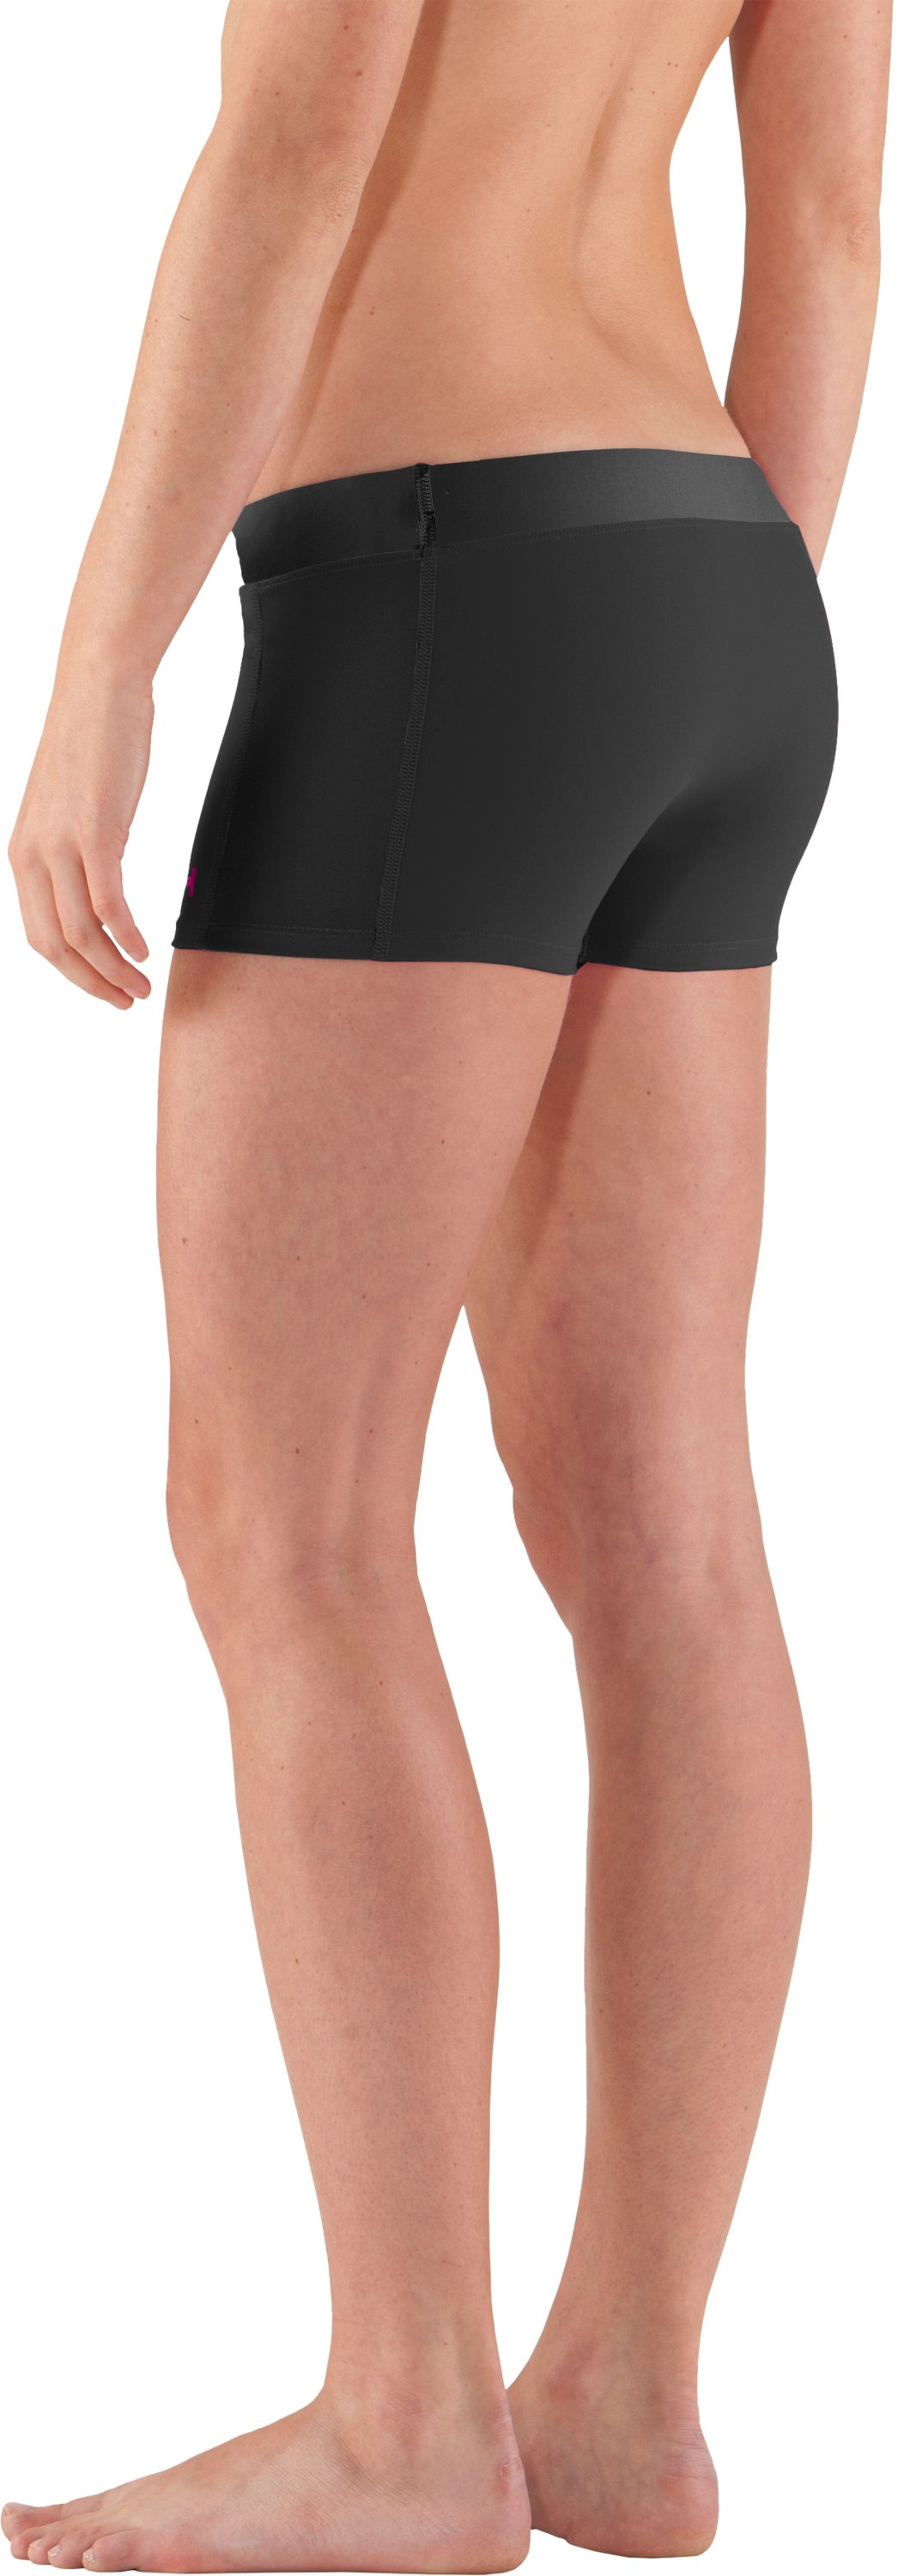 Women's Q-Lightful Shorts, Black